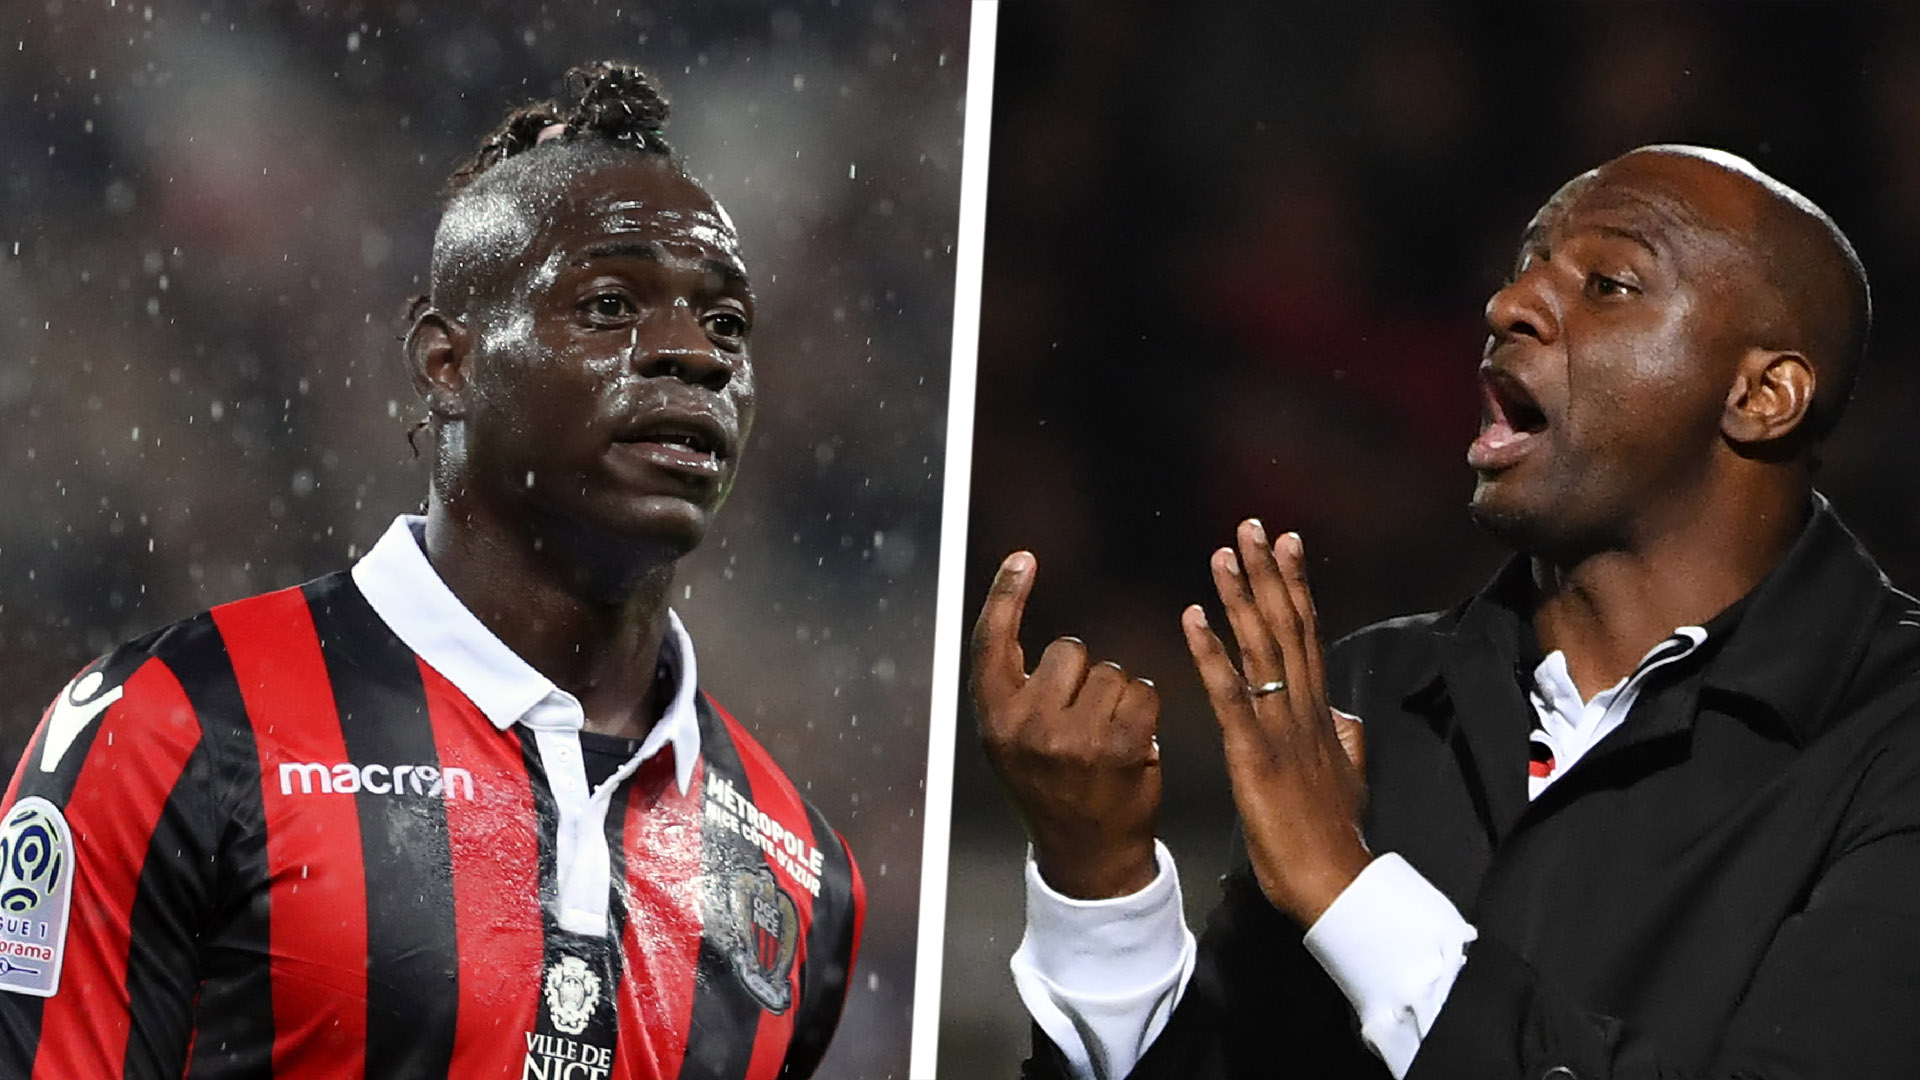 Vieira: It was really difficult for Balotelli and I to work together